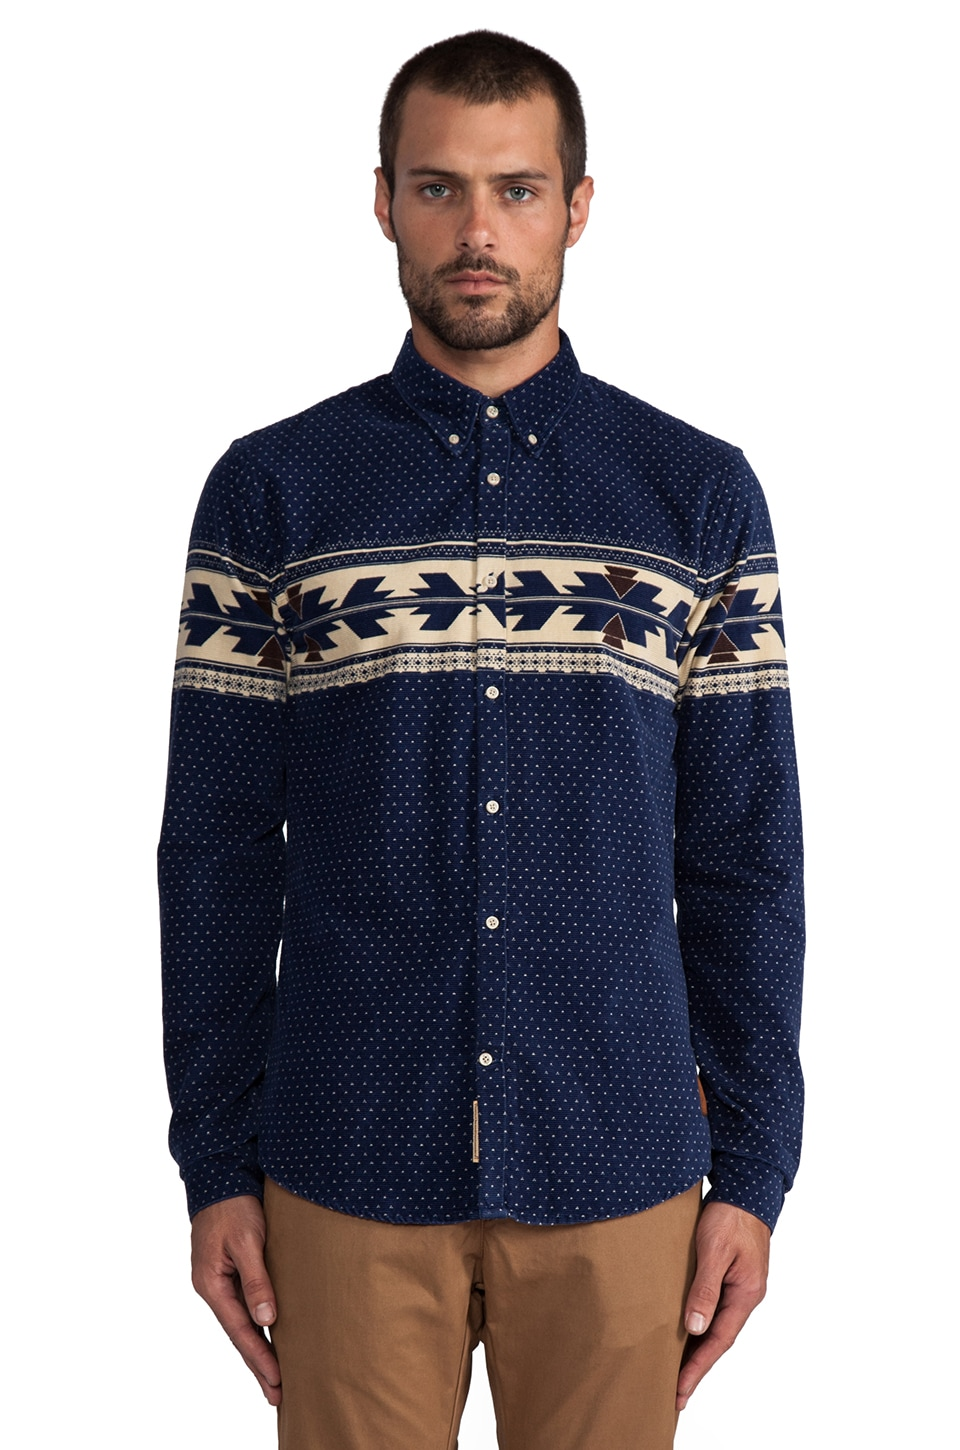 Scotch & Soda Corduroy Shirt in Navy